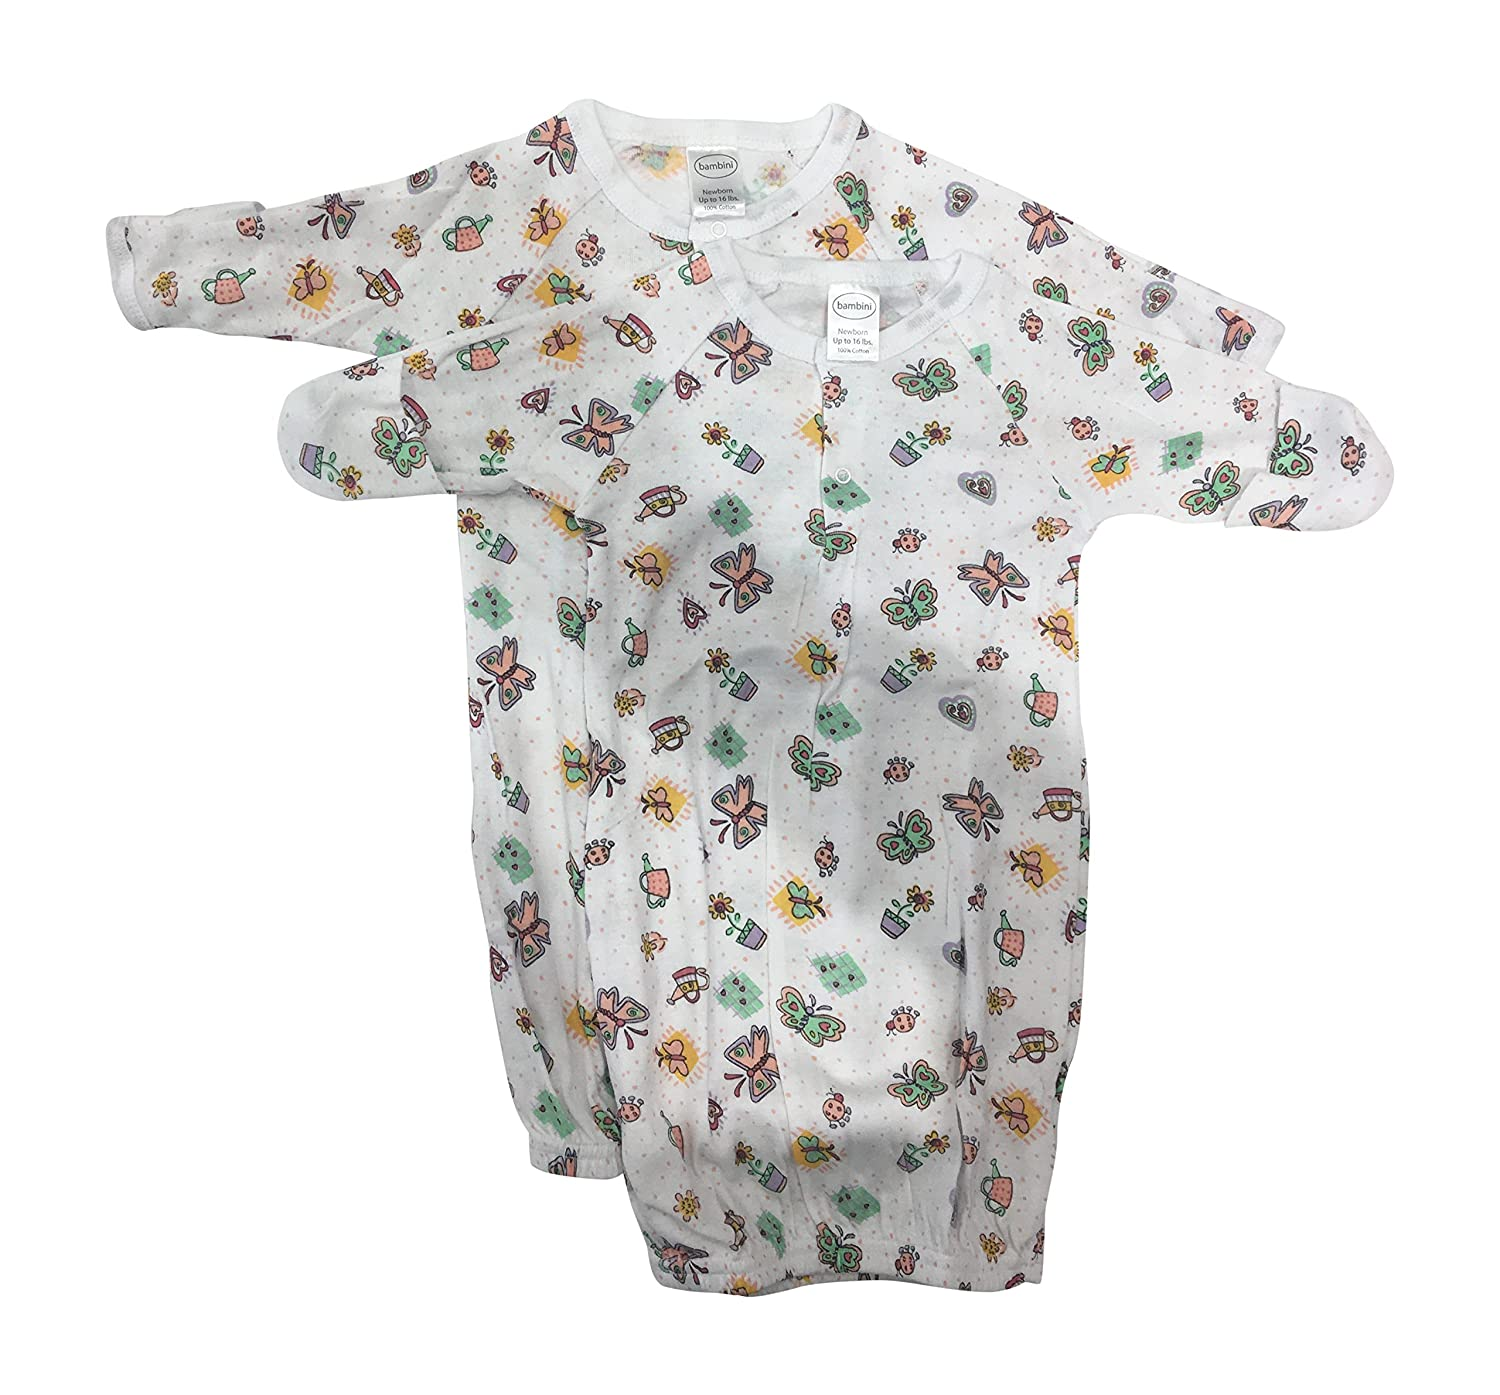 bambini Baby BoysPlay Time Prints 2-Pack Gowns 100% Cotton, Preemie